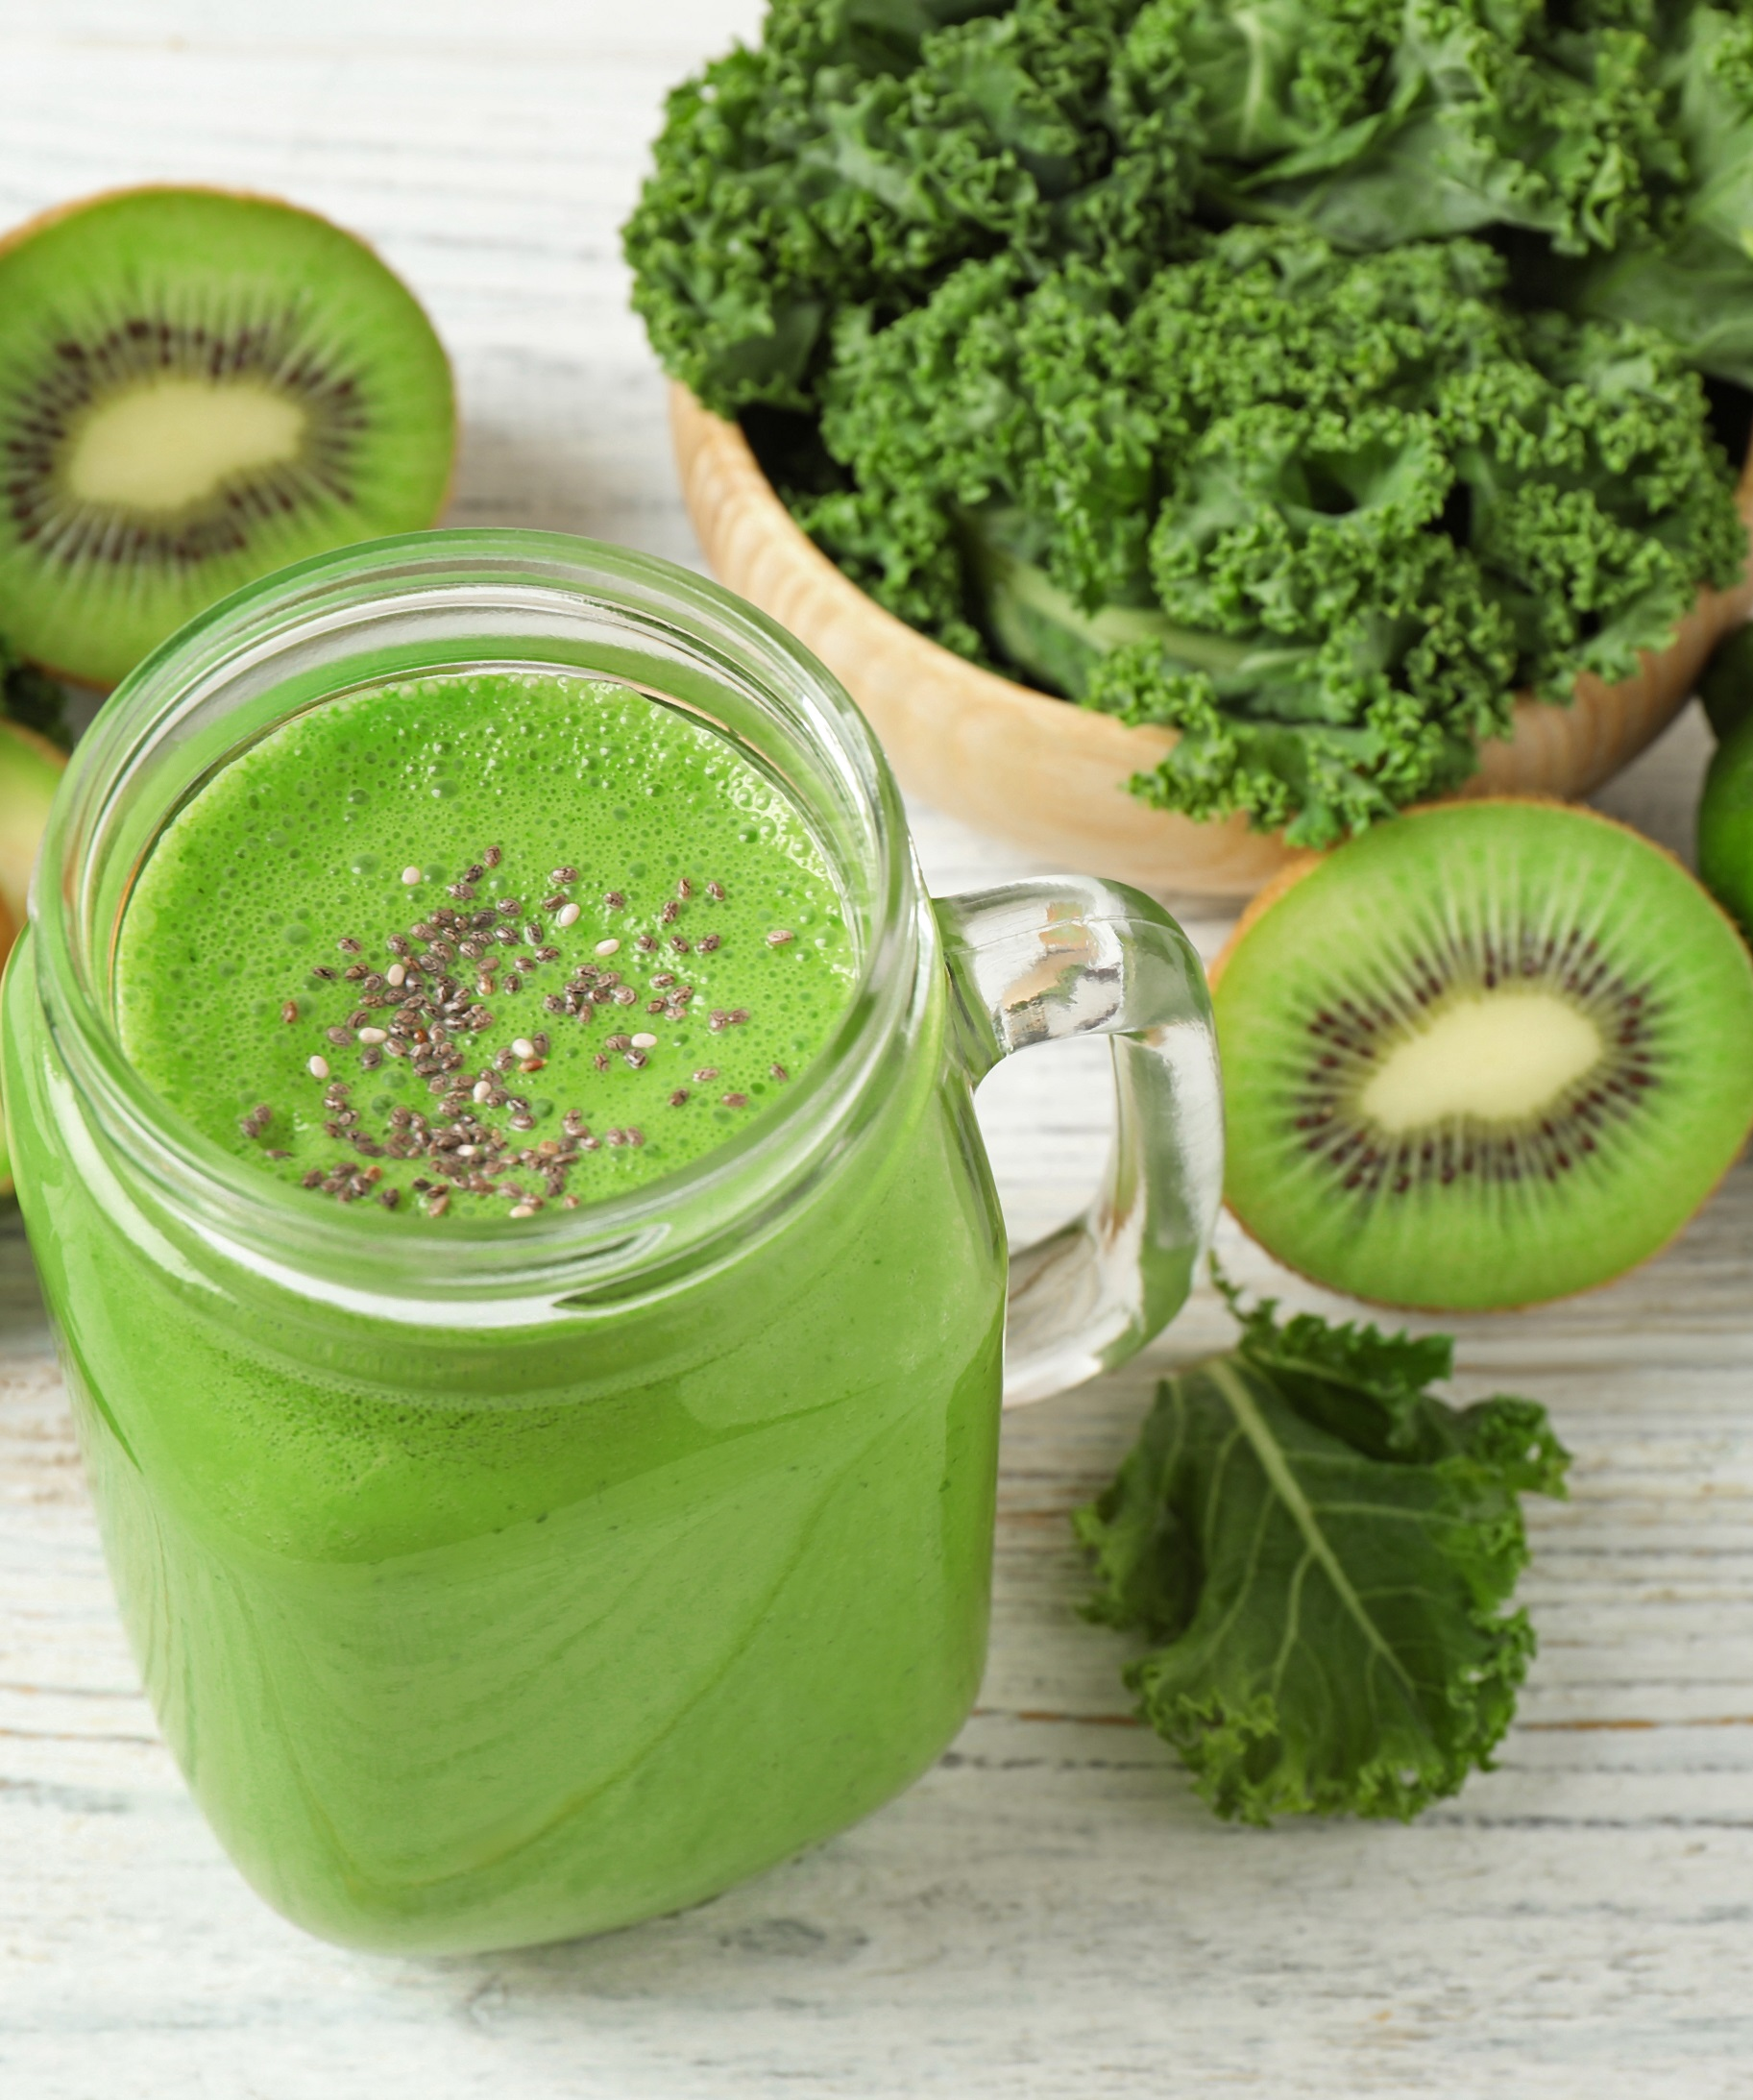 Oscar® Kiwi and kale Green Smoothie